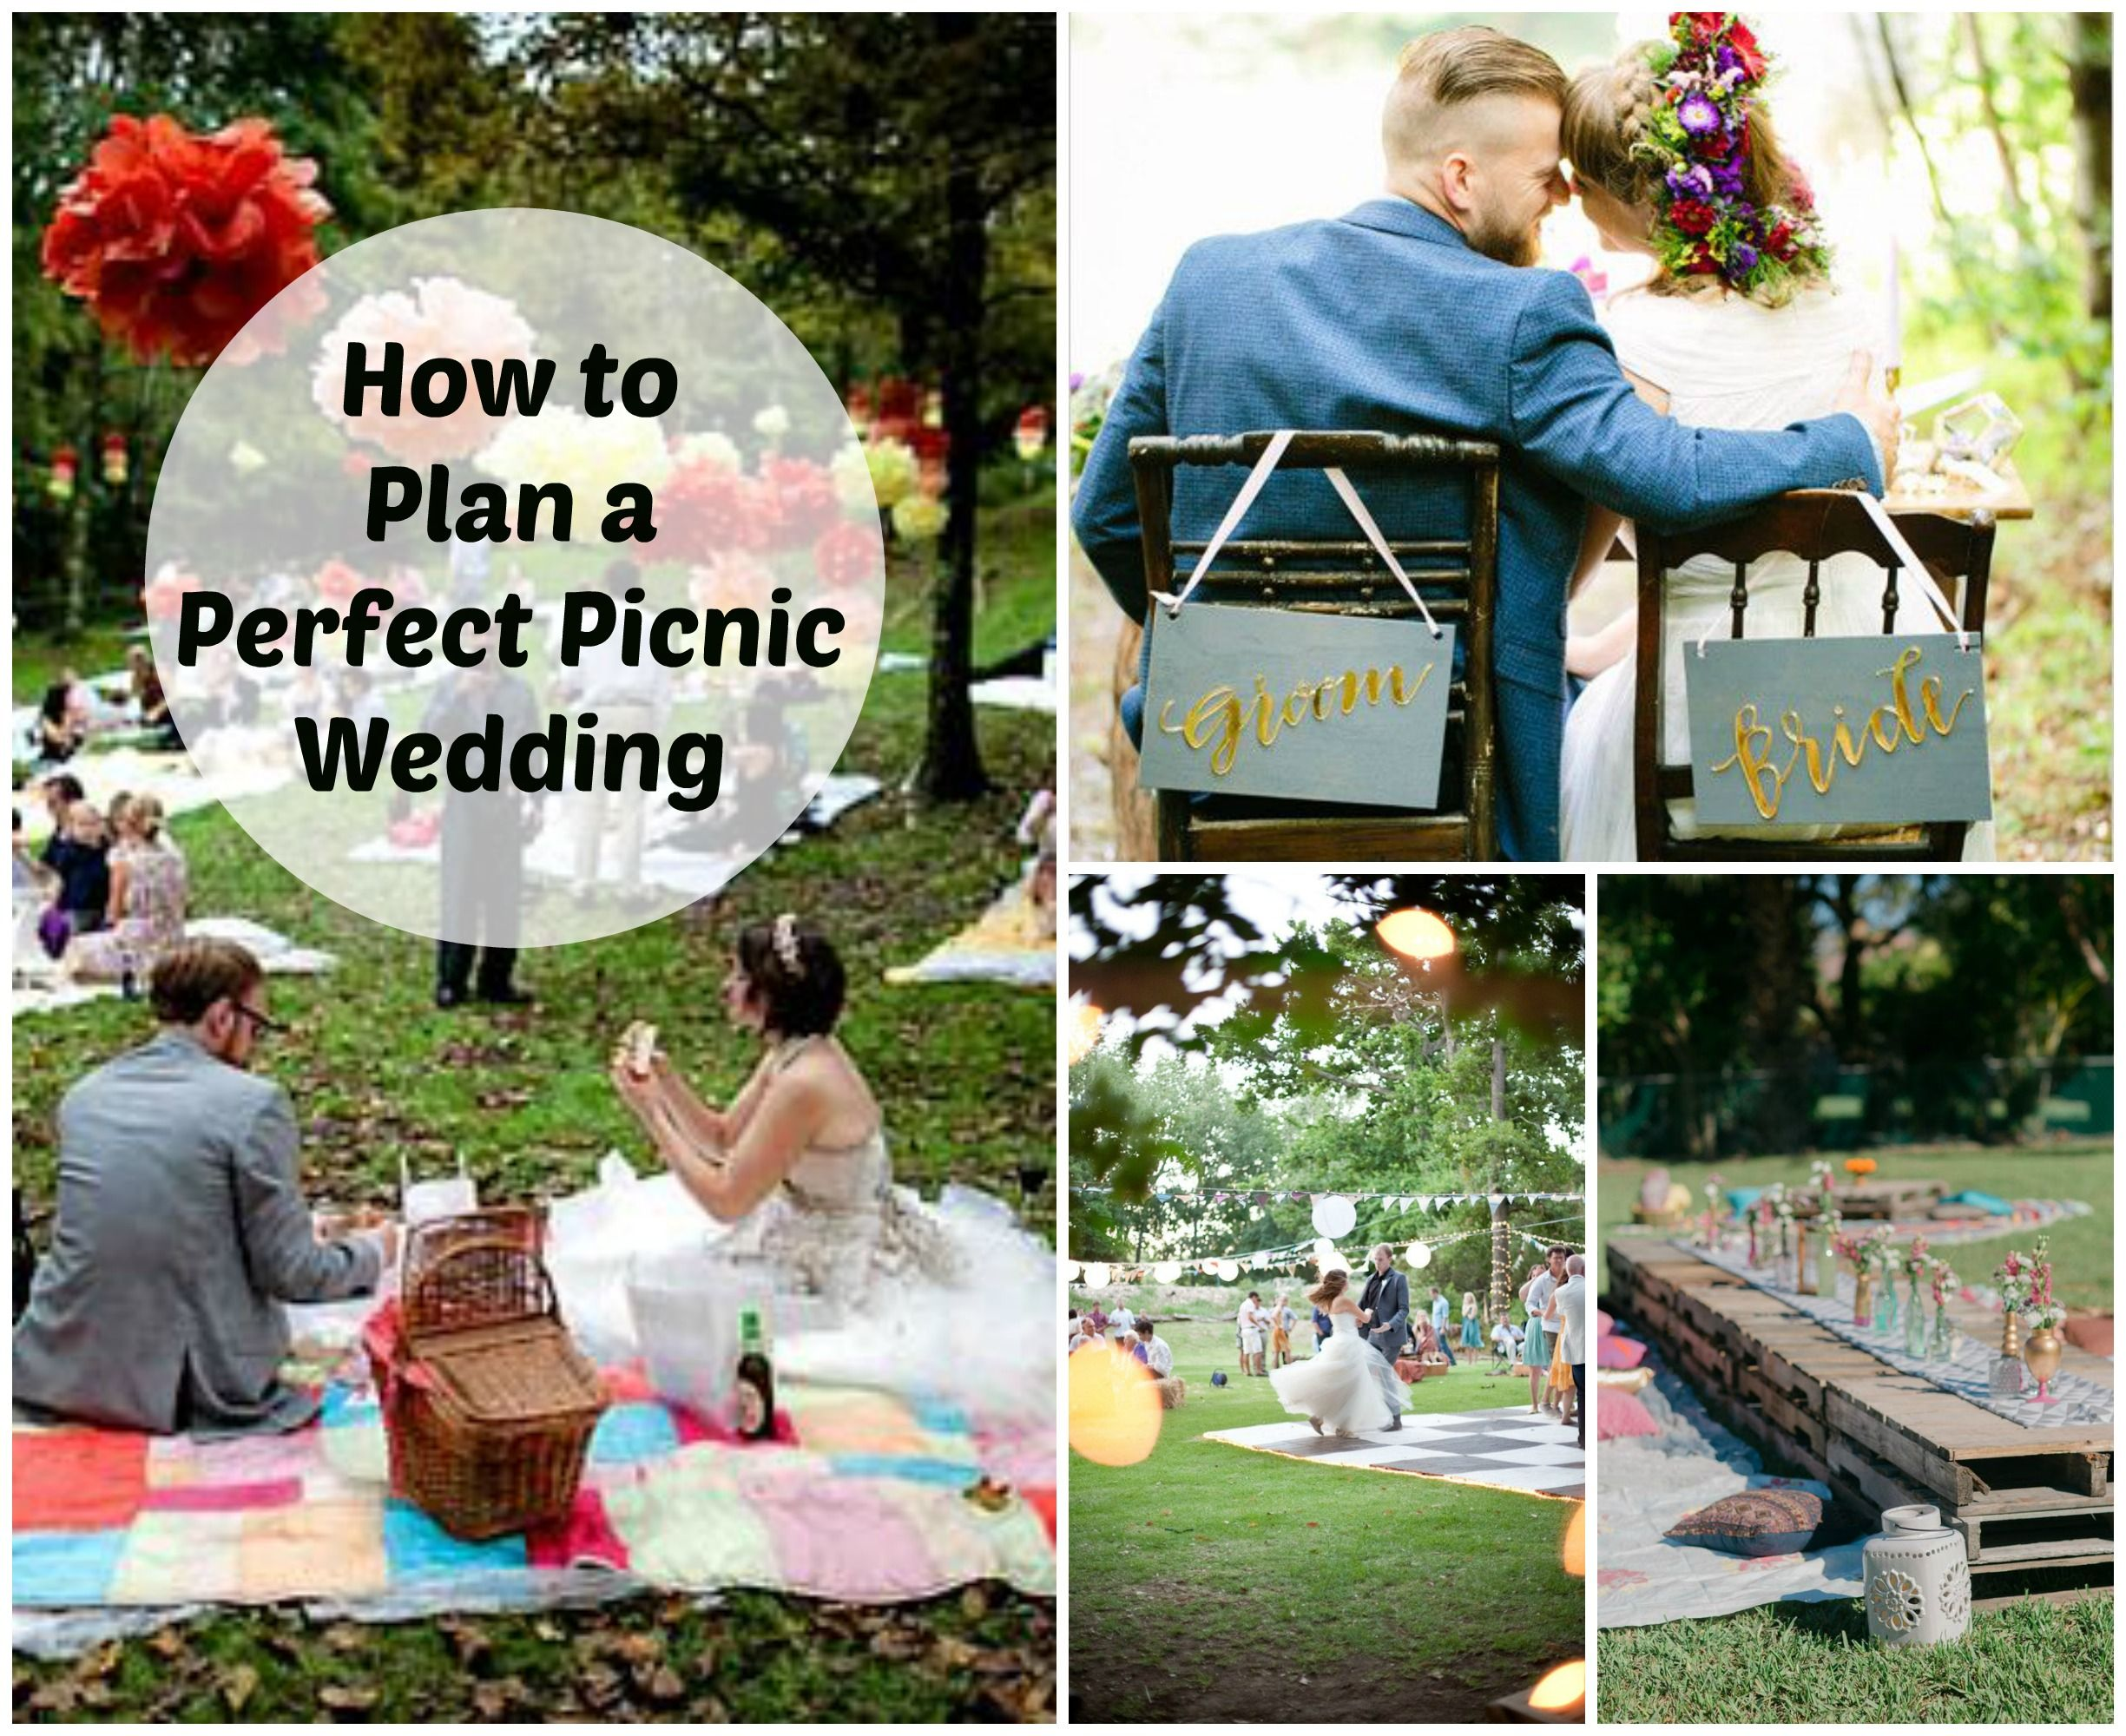 If You Fancy An Outdoor Wedding Reception Then Picnic Wedding Can